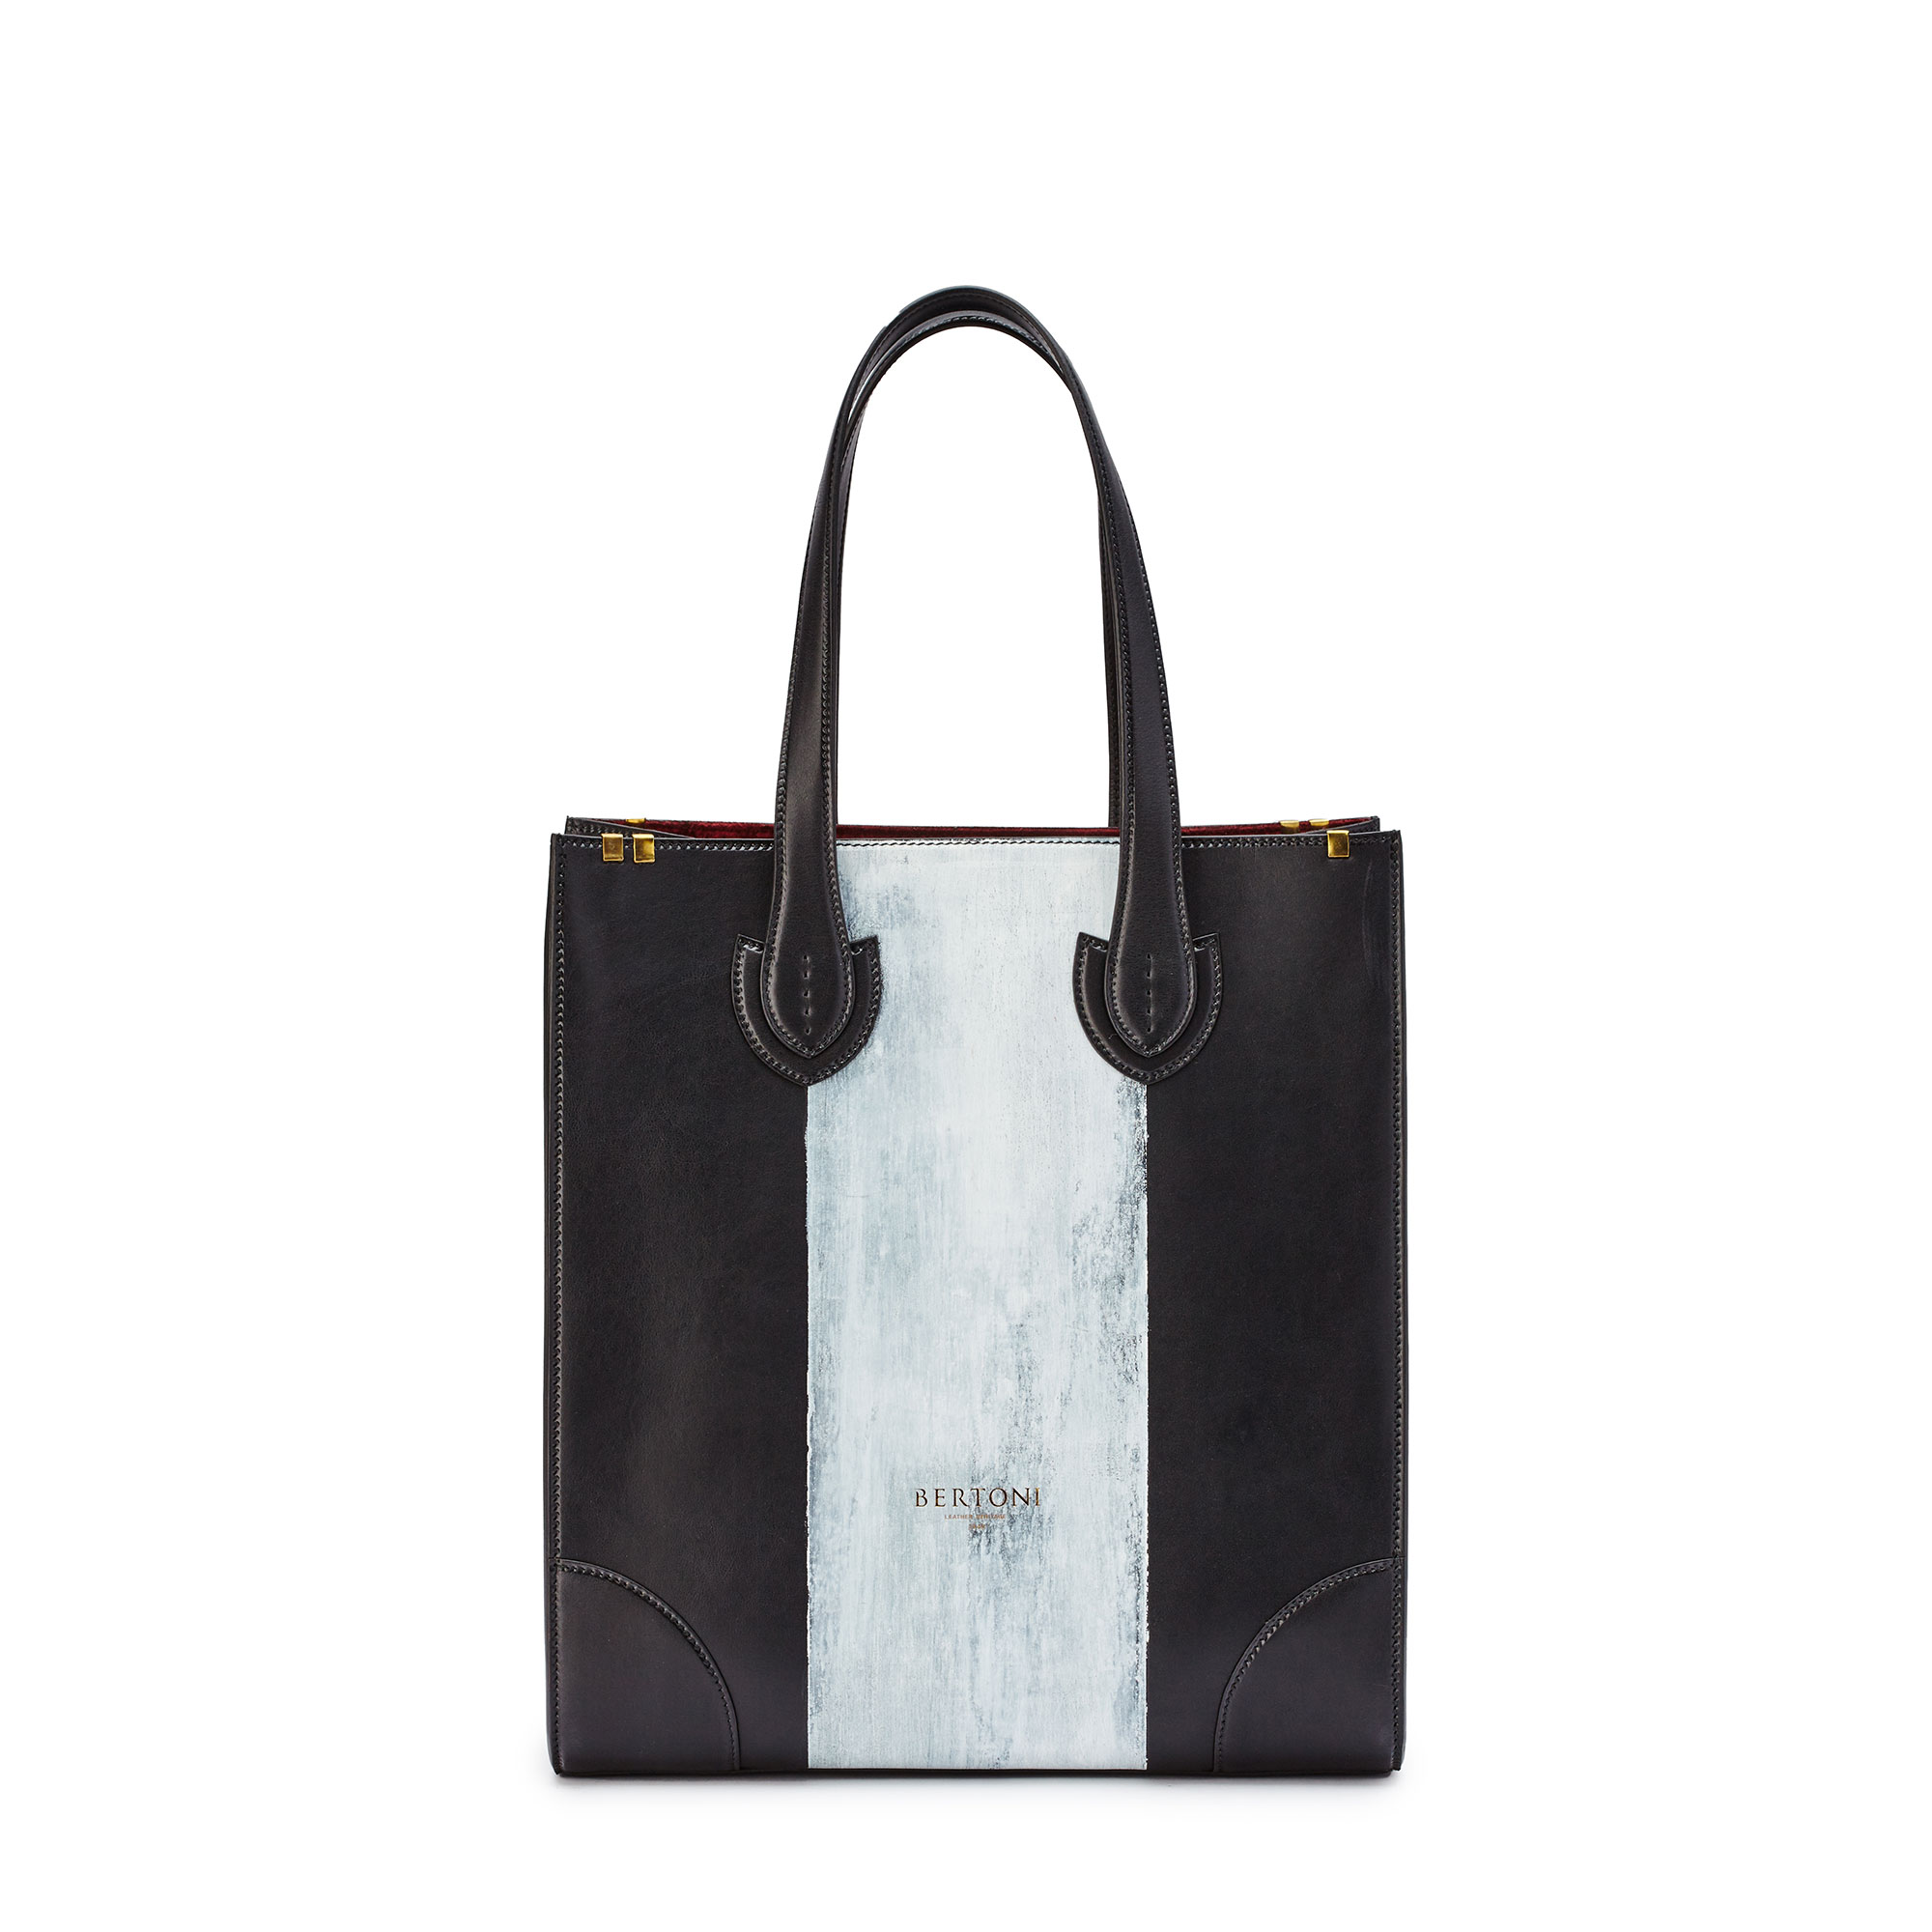 Signature-Tote-black-rock-calf-bag-Bertoni-1949